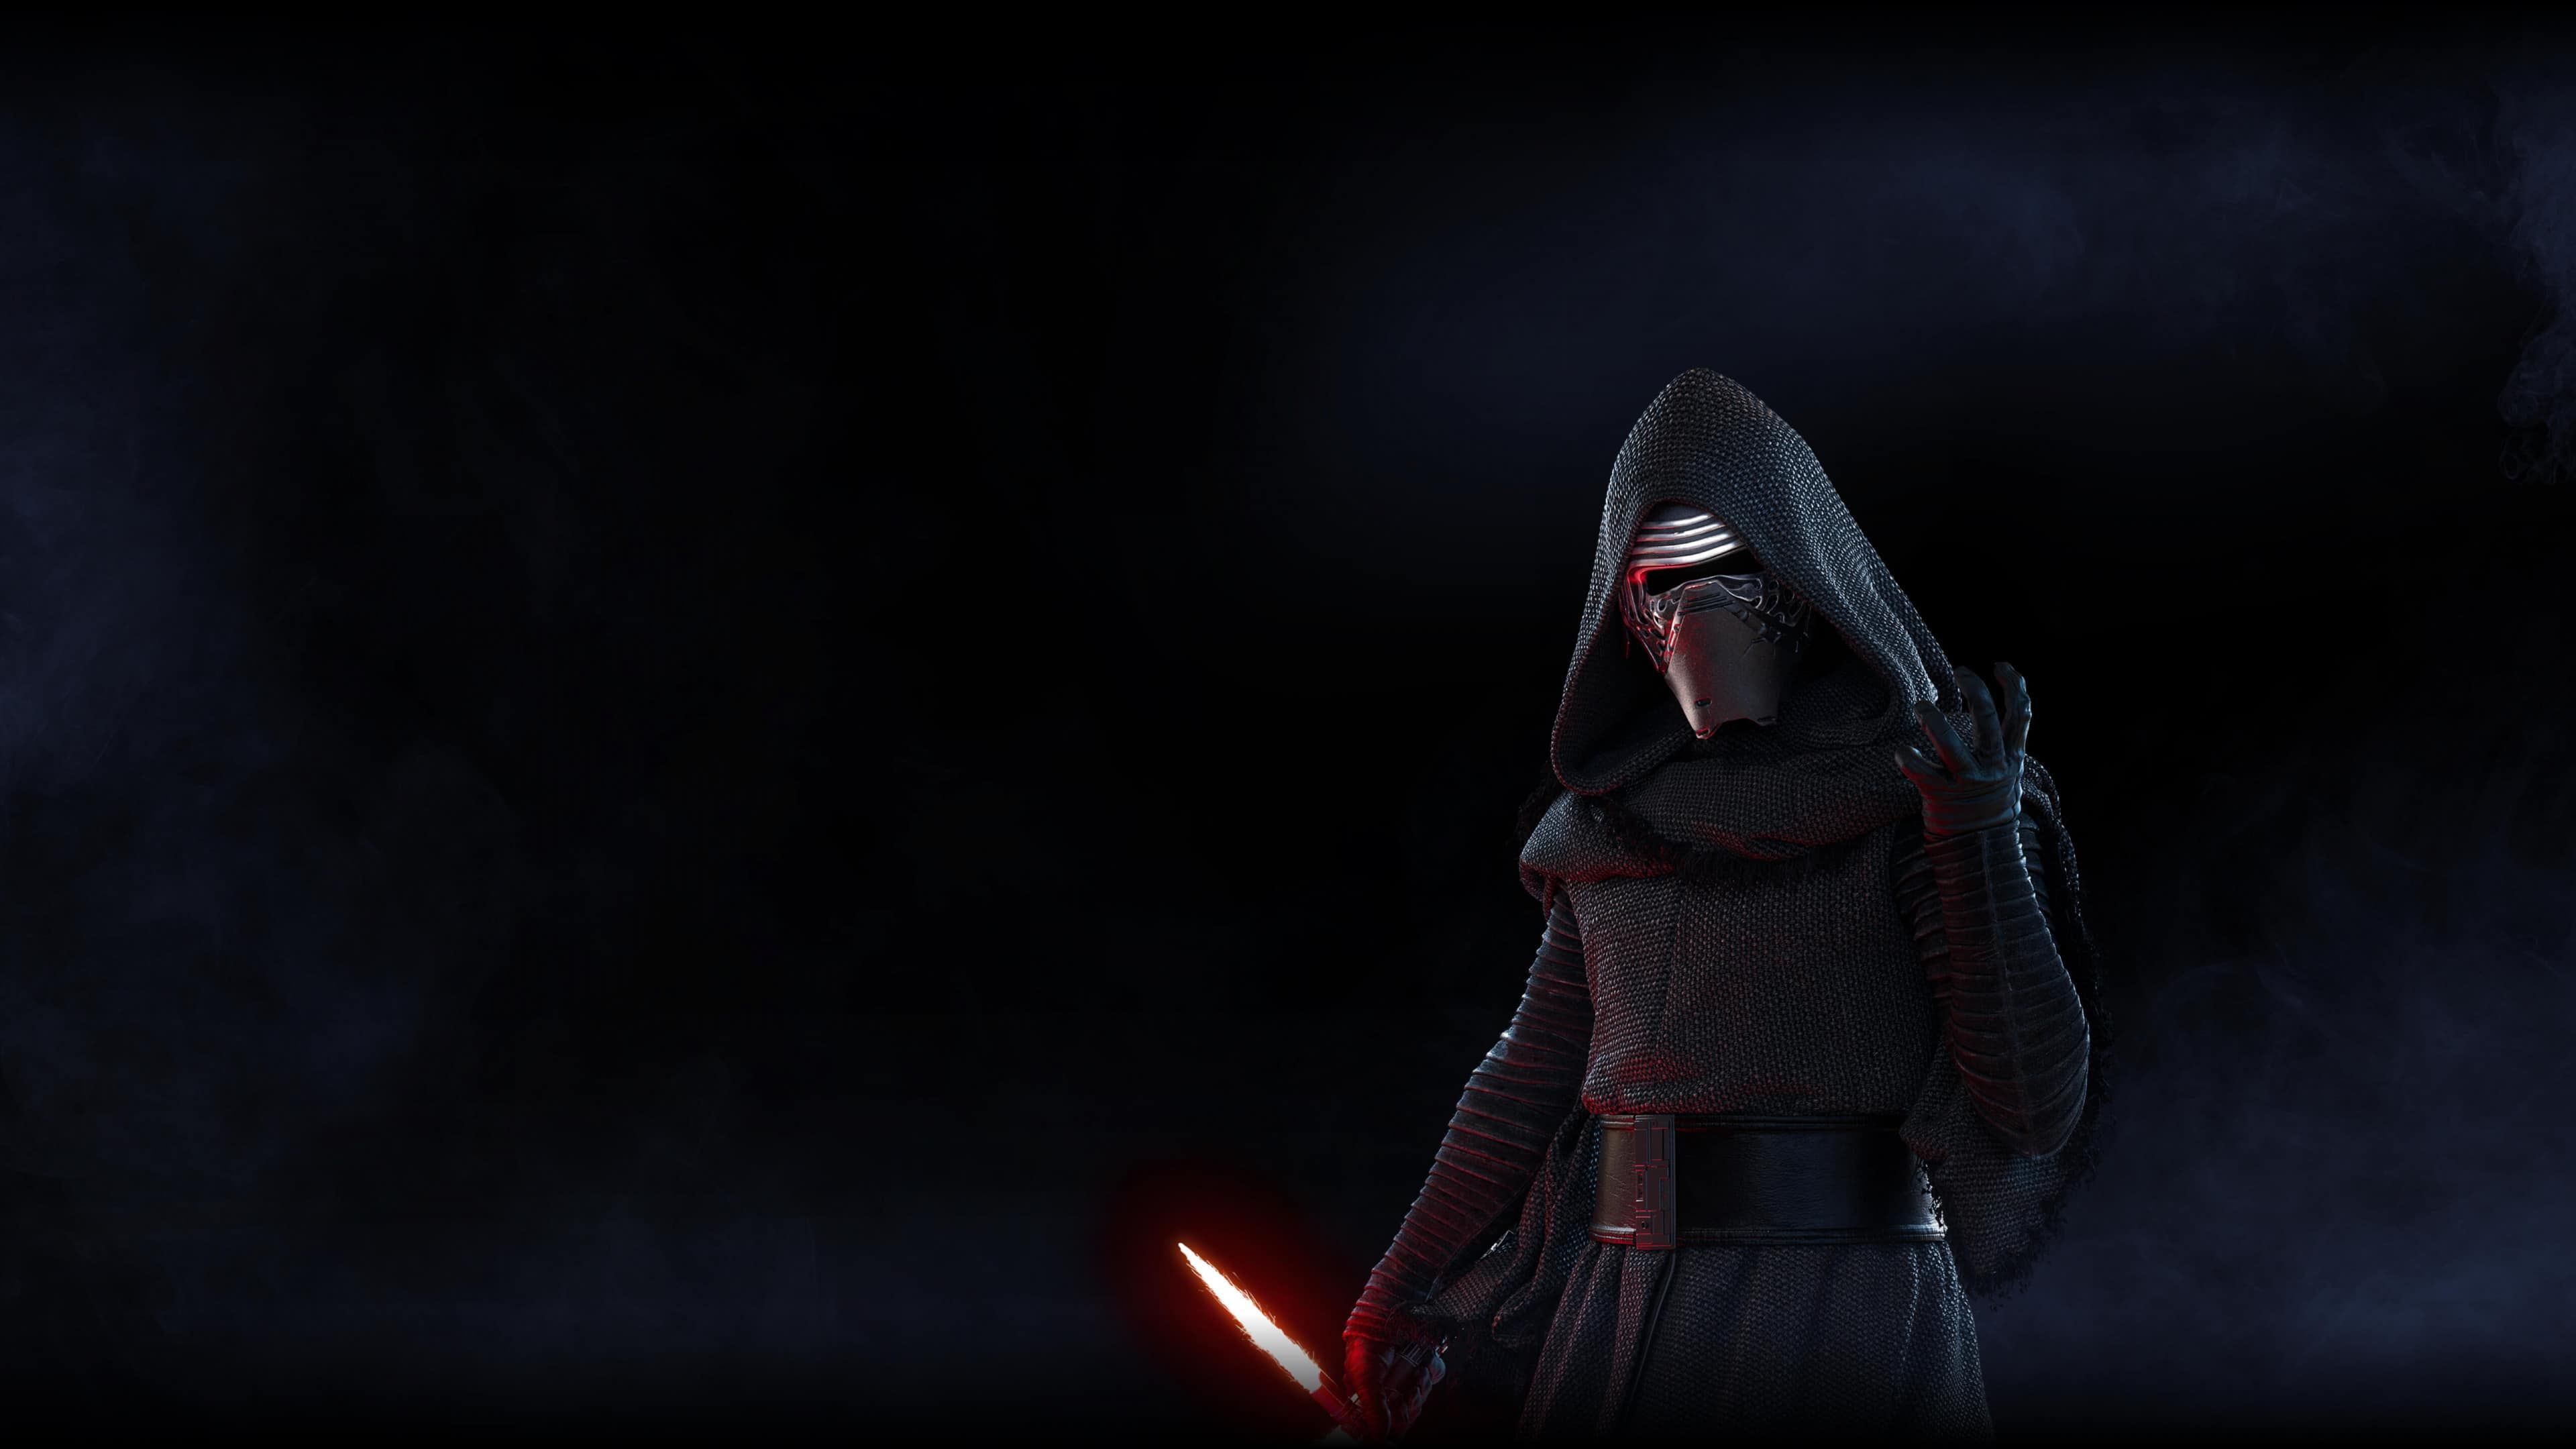 Star Wars Battlefront 2 Kylo Ren Https Hdwallpapersmafia Com Star Wars Battlefront 2 Kylo Ren Star Wars Wallpaper Star Wars Battlefront Star Wars Background